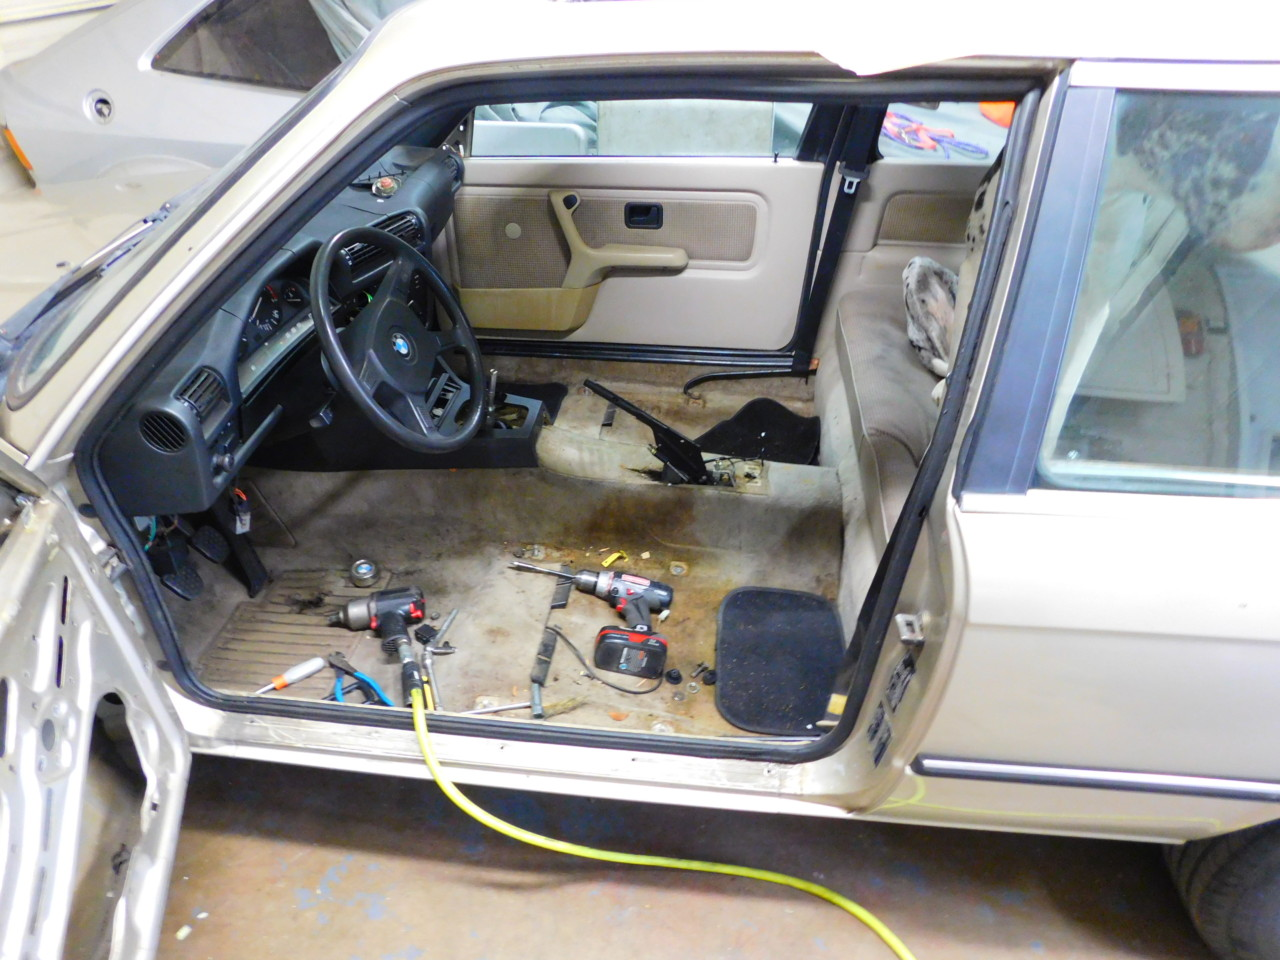 ... the process of building a Spec E30 is stripping the interior. The obvious first step is removing the front and rear seats most of the carpet door and ... & Project Spec E30 u2013 Part II: Interior Teardown | NASA Speed News ... pezcame.com